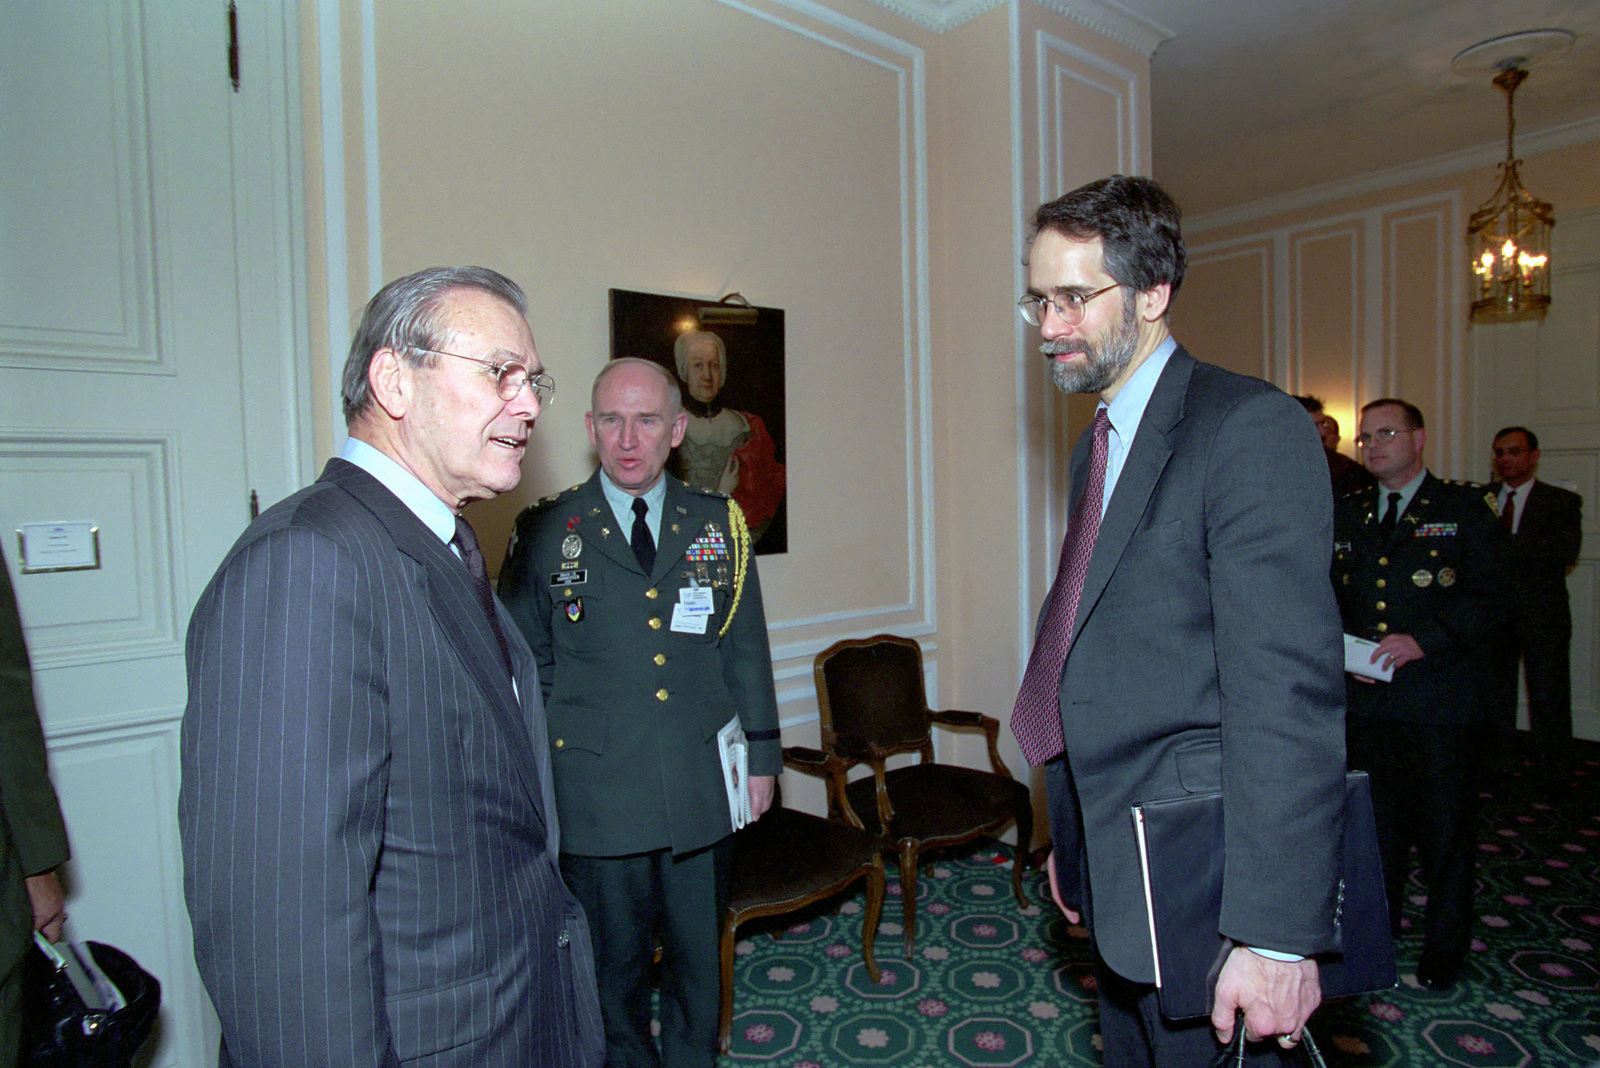 The Honorable Donald H. Rumsfeld (left), U.S. Secretary of Defense (SECDEF), speaks with Mr. Faabrycky, SENIOR Country Director, Germany, at the 37th Munich Conference on Security Policy in Munich, Germany, Feb. 3, 2001. U.S. Army COL. Eric Hammersen, Defense Attache'to the U.S. Embassy, Berlin, stands in the background. OSD Package 010203-D-2987S-001-030 (PHOTO by Helene C. Stikkel) (Released)